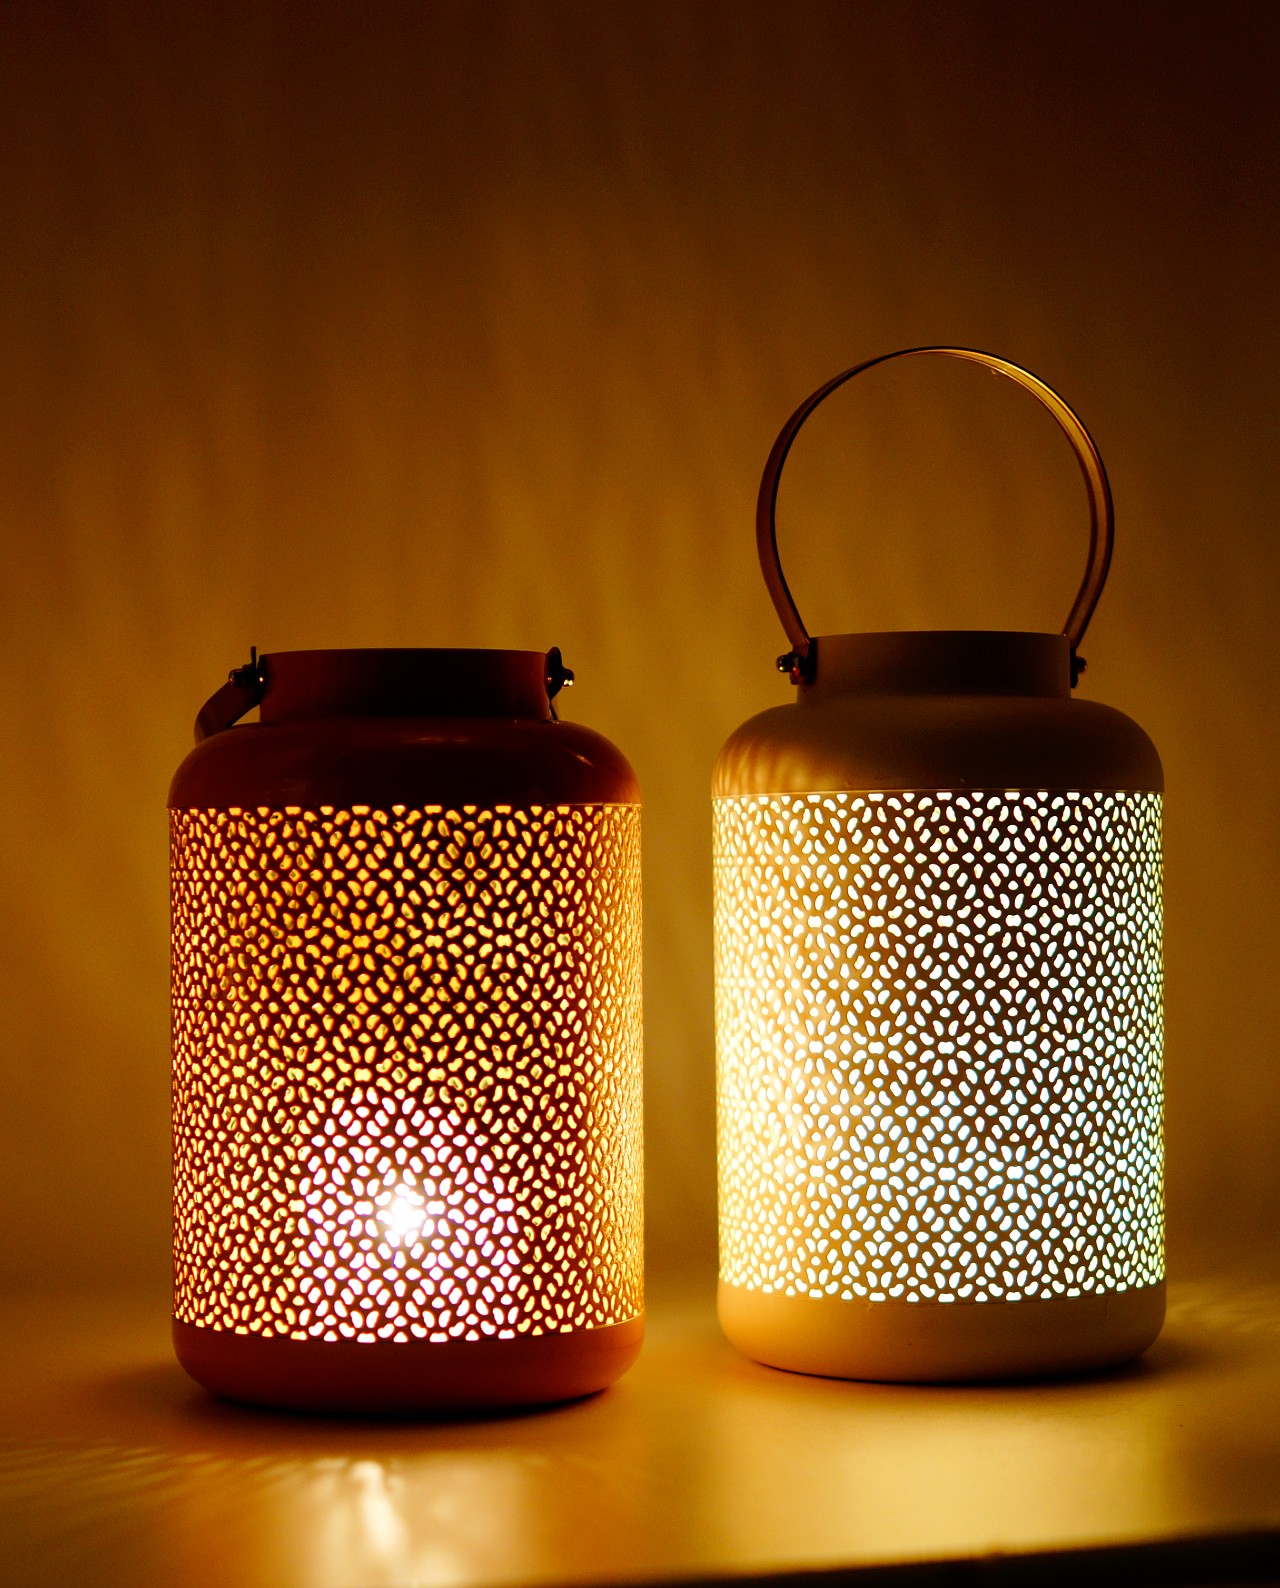 Lanterns made of metal in salmon and white color, height 24 cm, diameter 15 cm